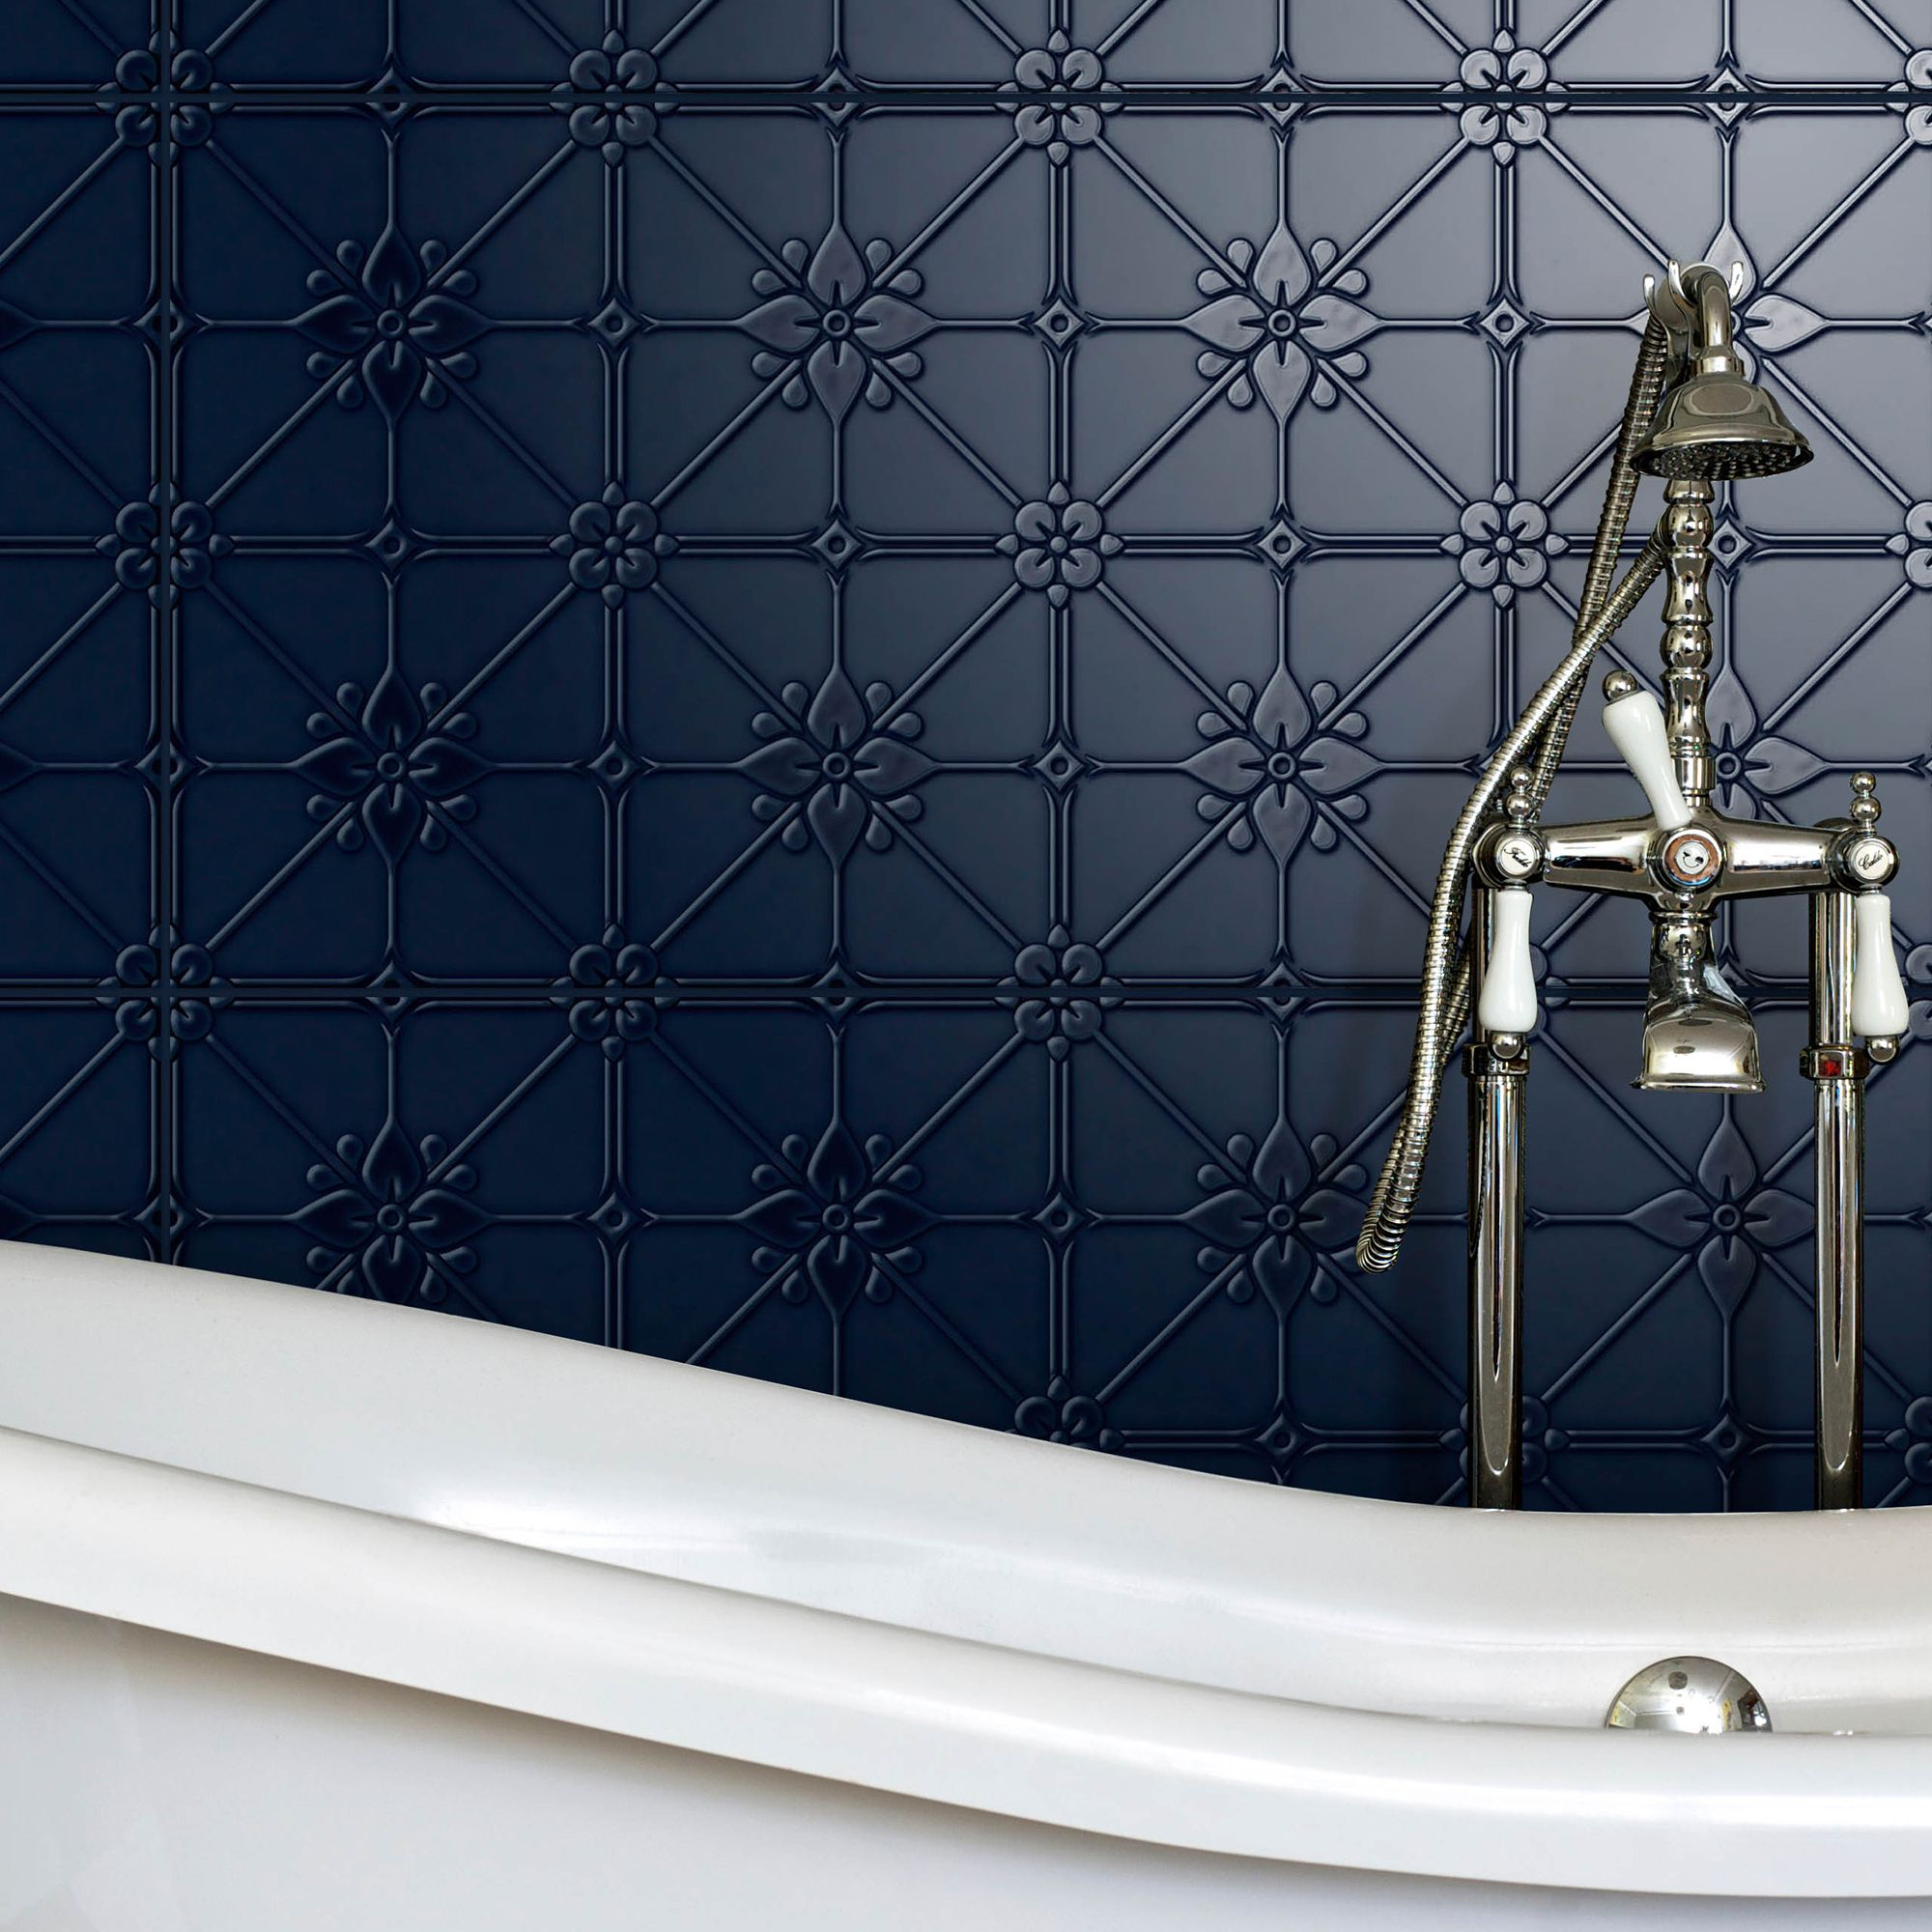 Pressed metal look tiles are seriously hot!! Great for a splashback ...